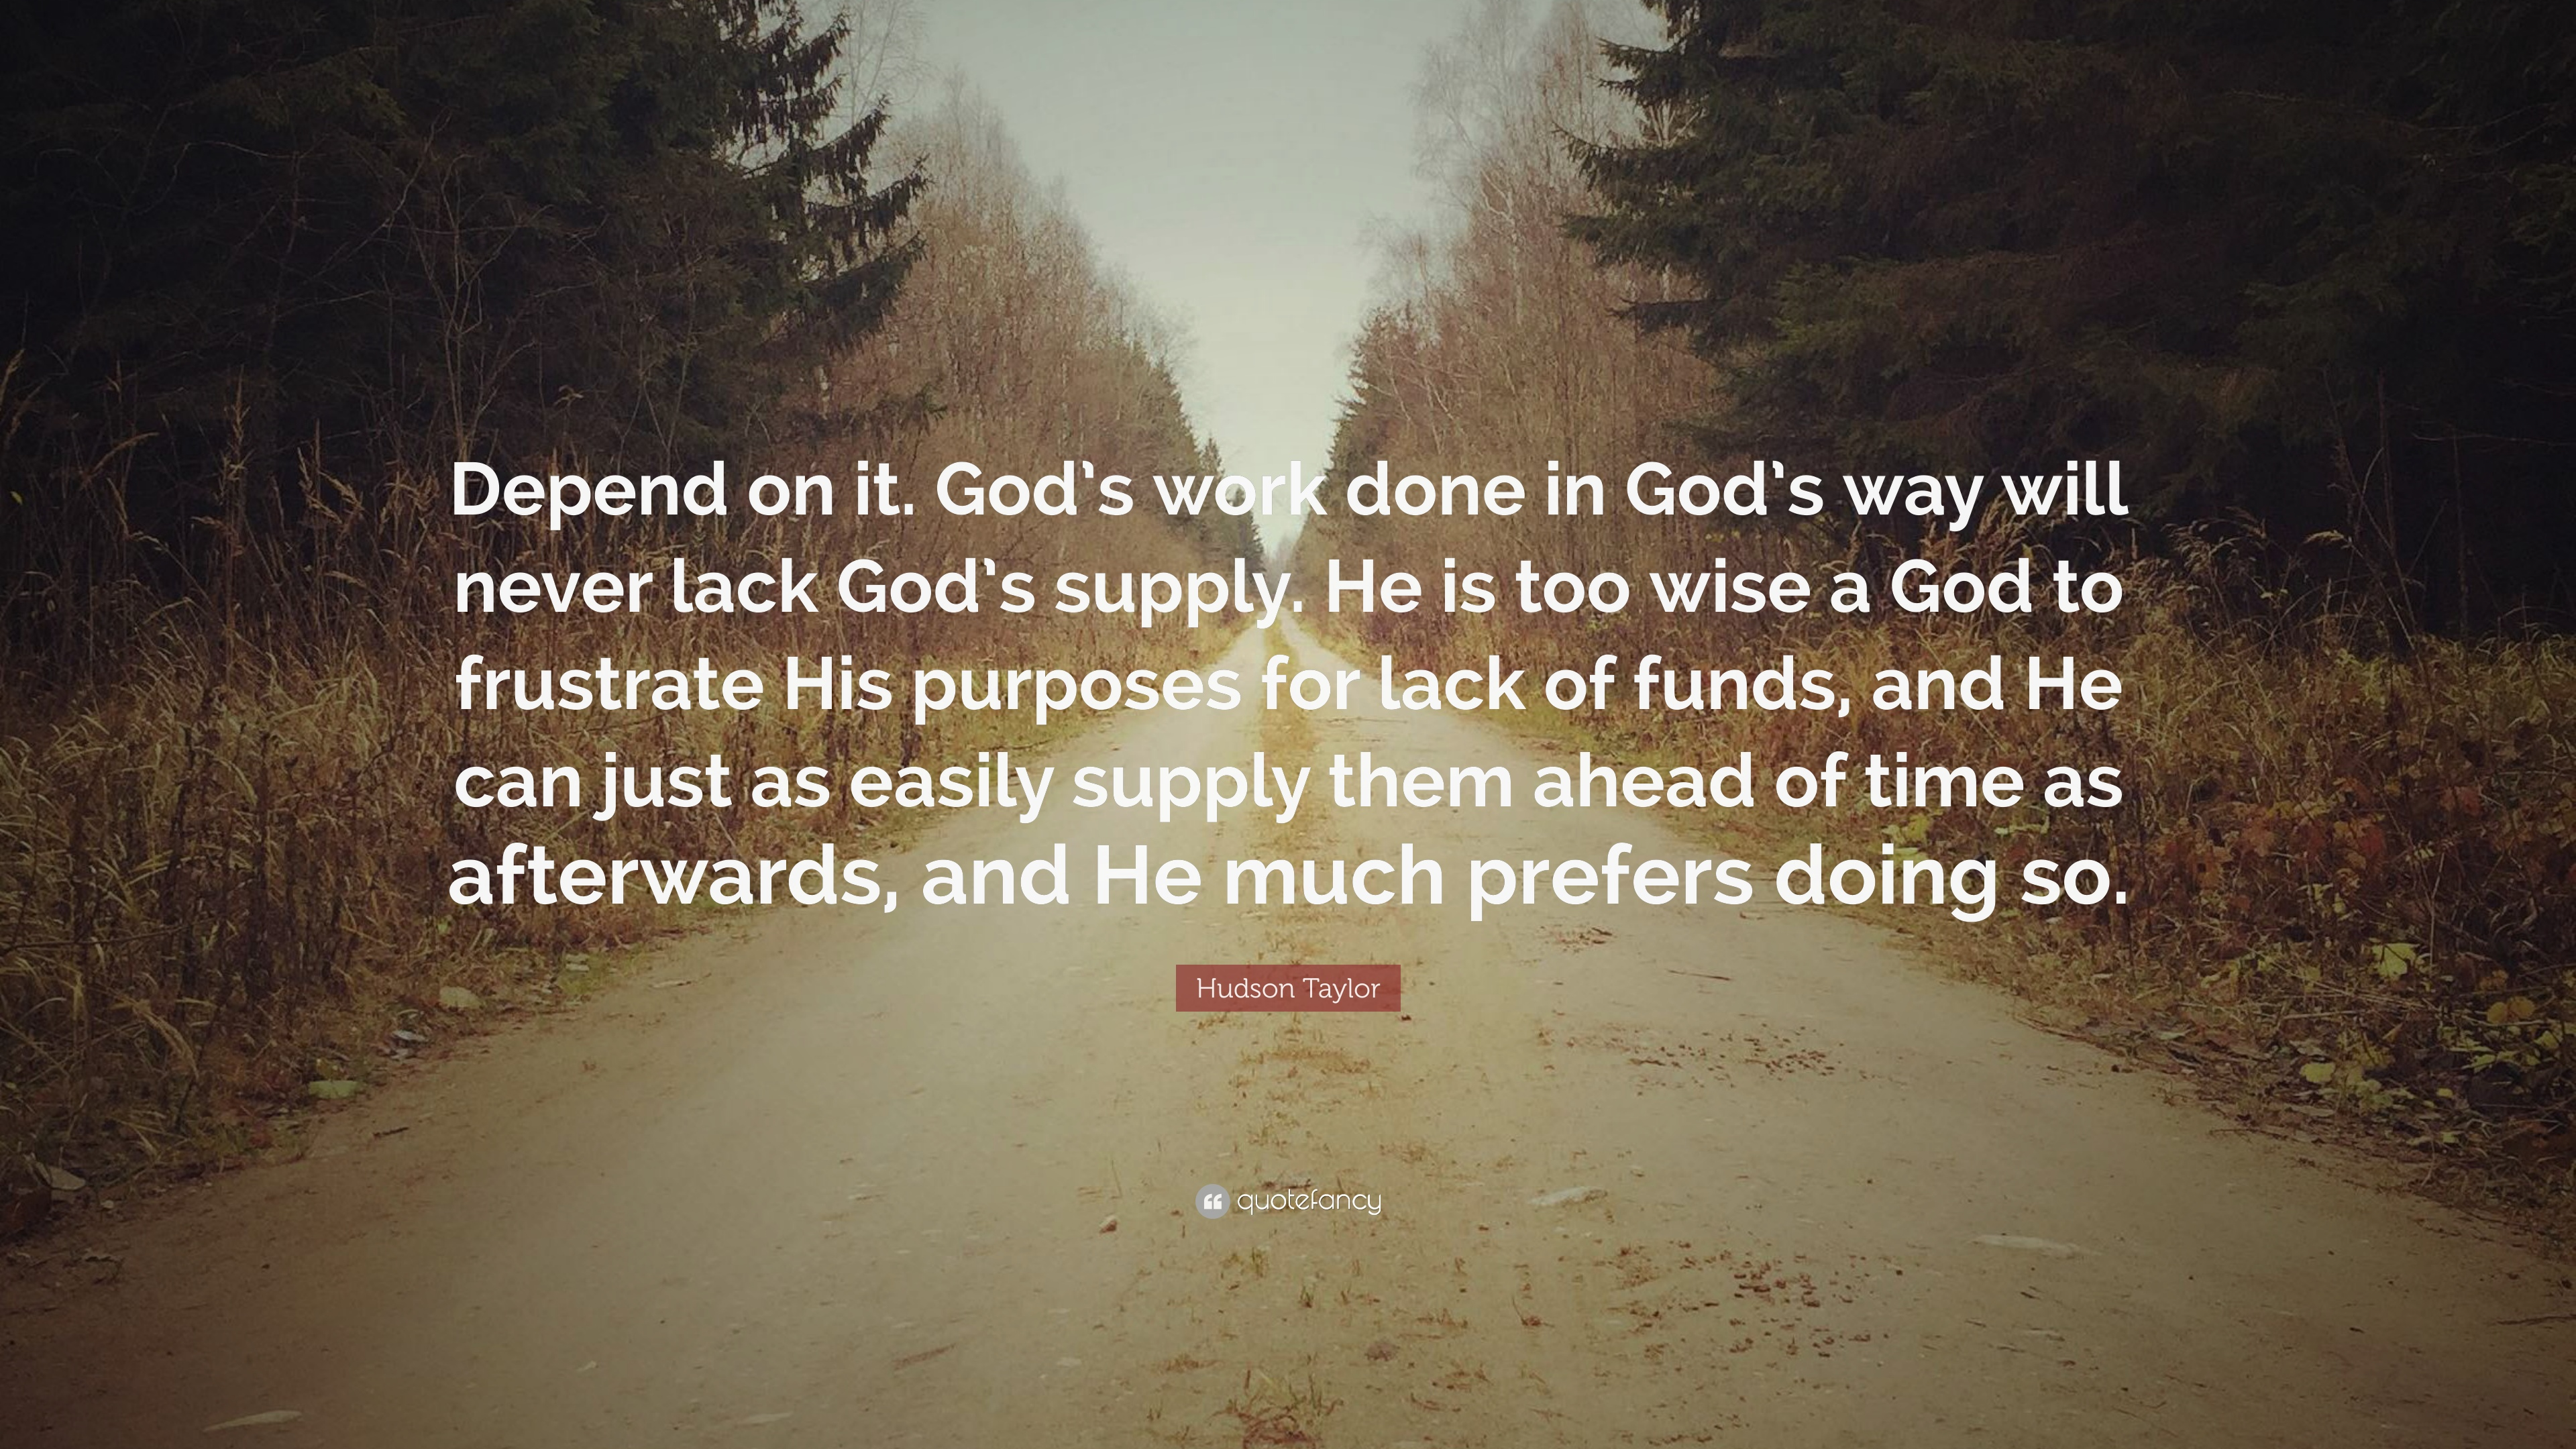 james hudson taylor quote depend on it god s work done in god s james hudson taylor quote depend on it god s work done in god s way